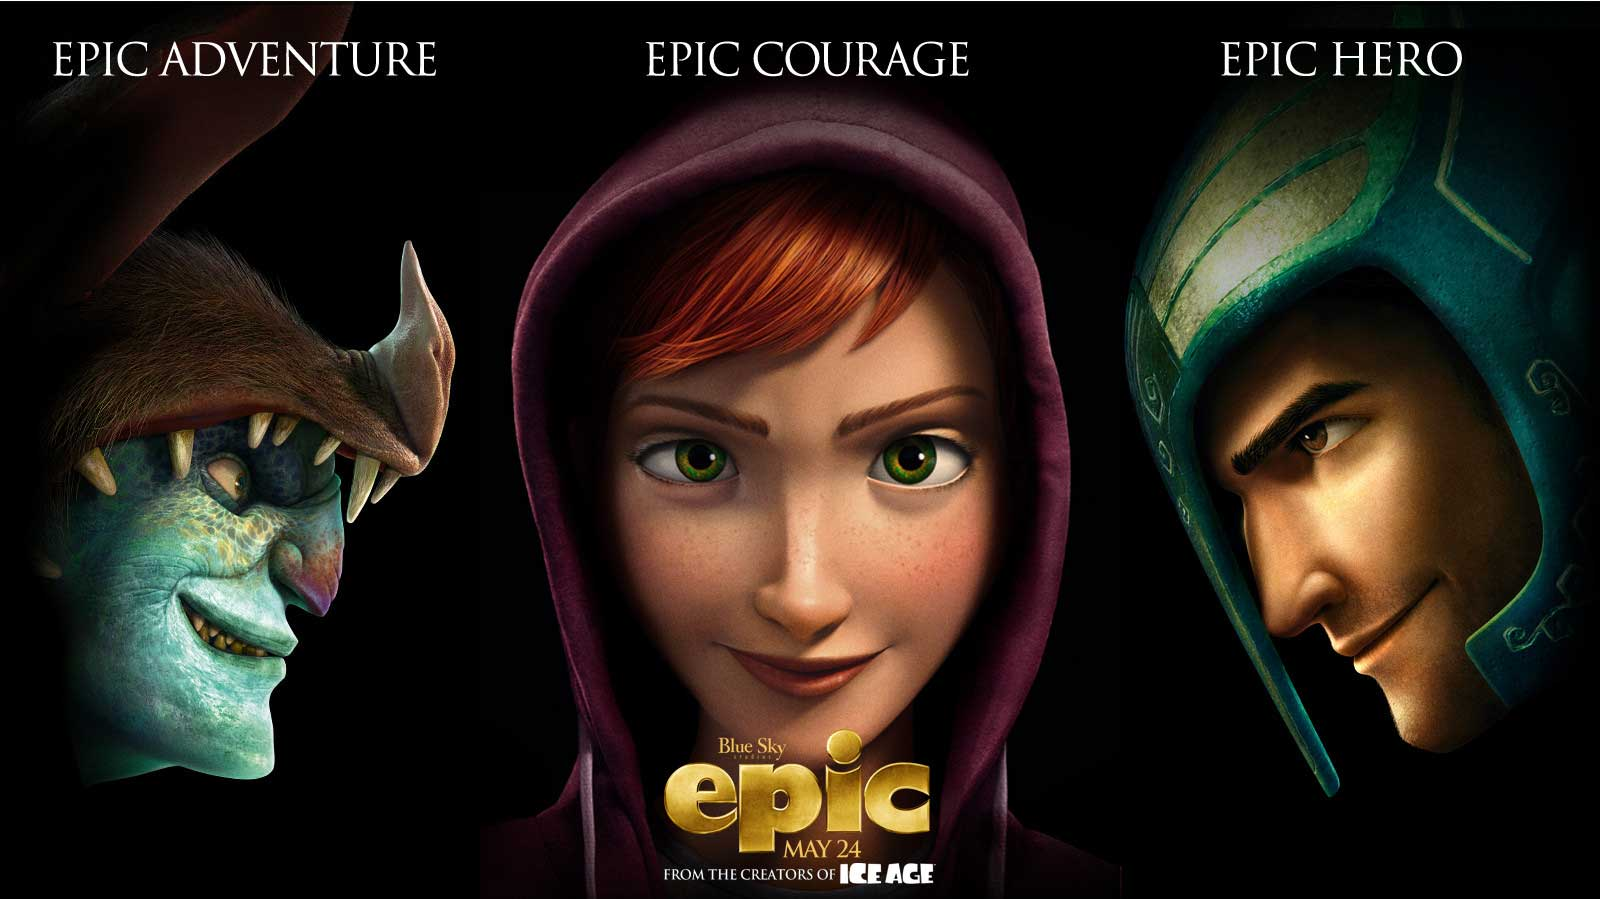 movie wallpapers and desktop backgrounds free epic 2013 free hd 1600x899